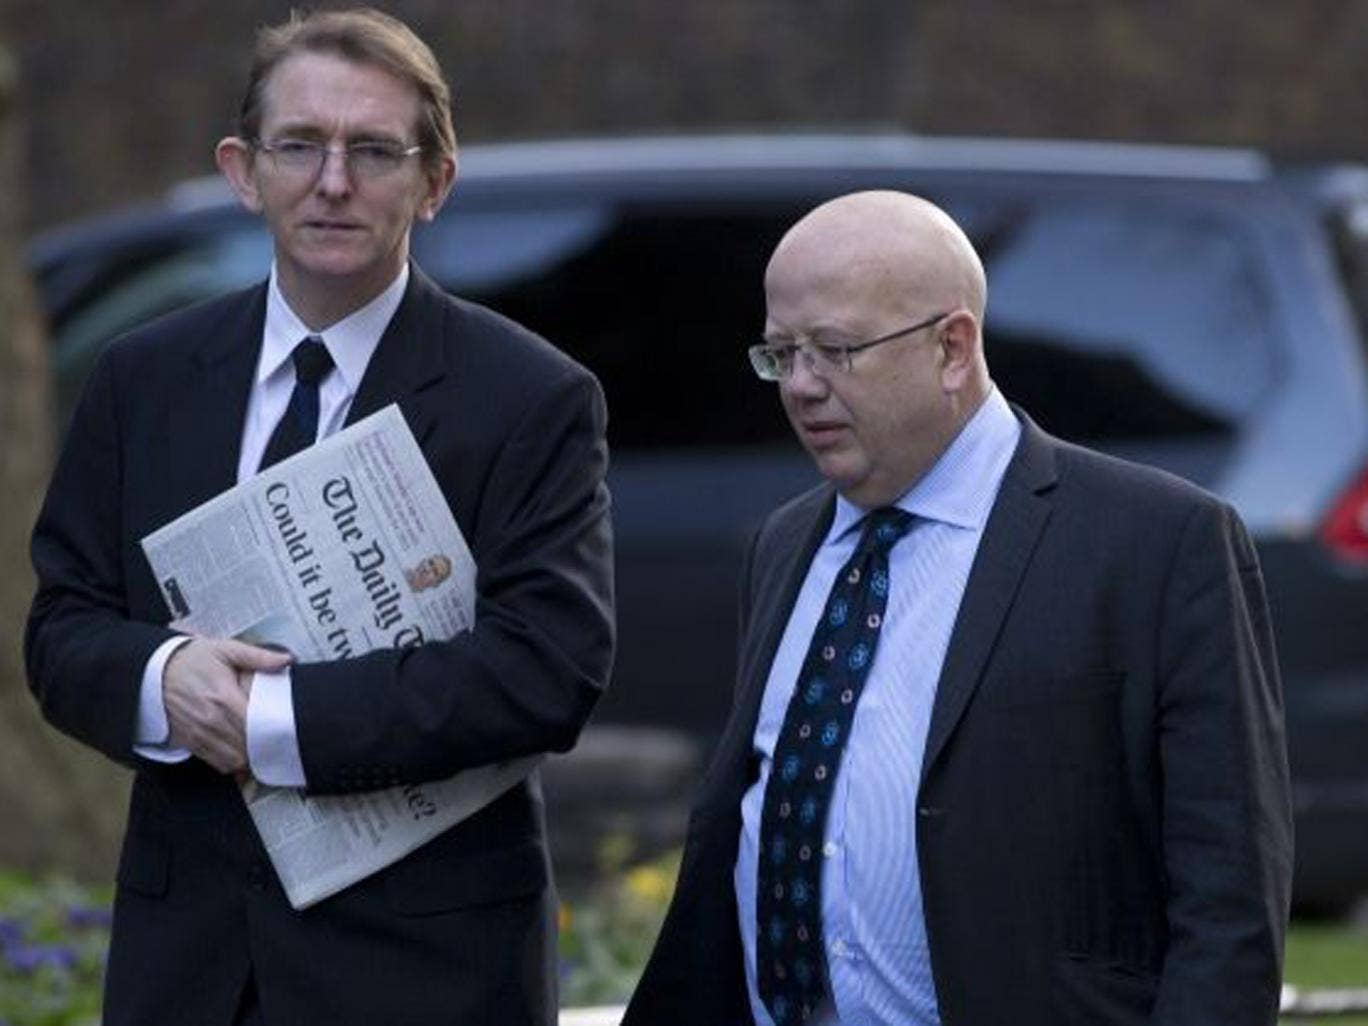 Editor of The Independent Chris Blackhurst, right, arrives for the meeting with other newspaper editors and David Cameron alongside Telegraph editor Tony Gallagher